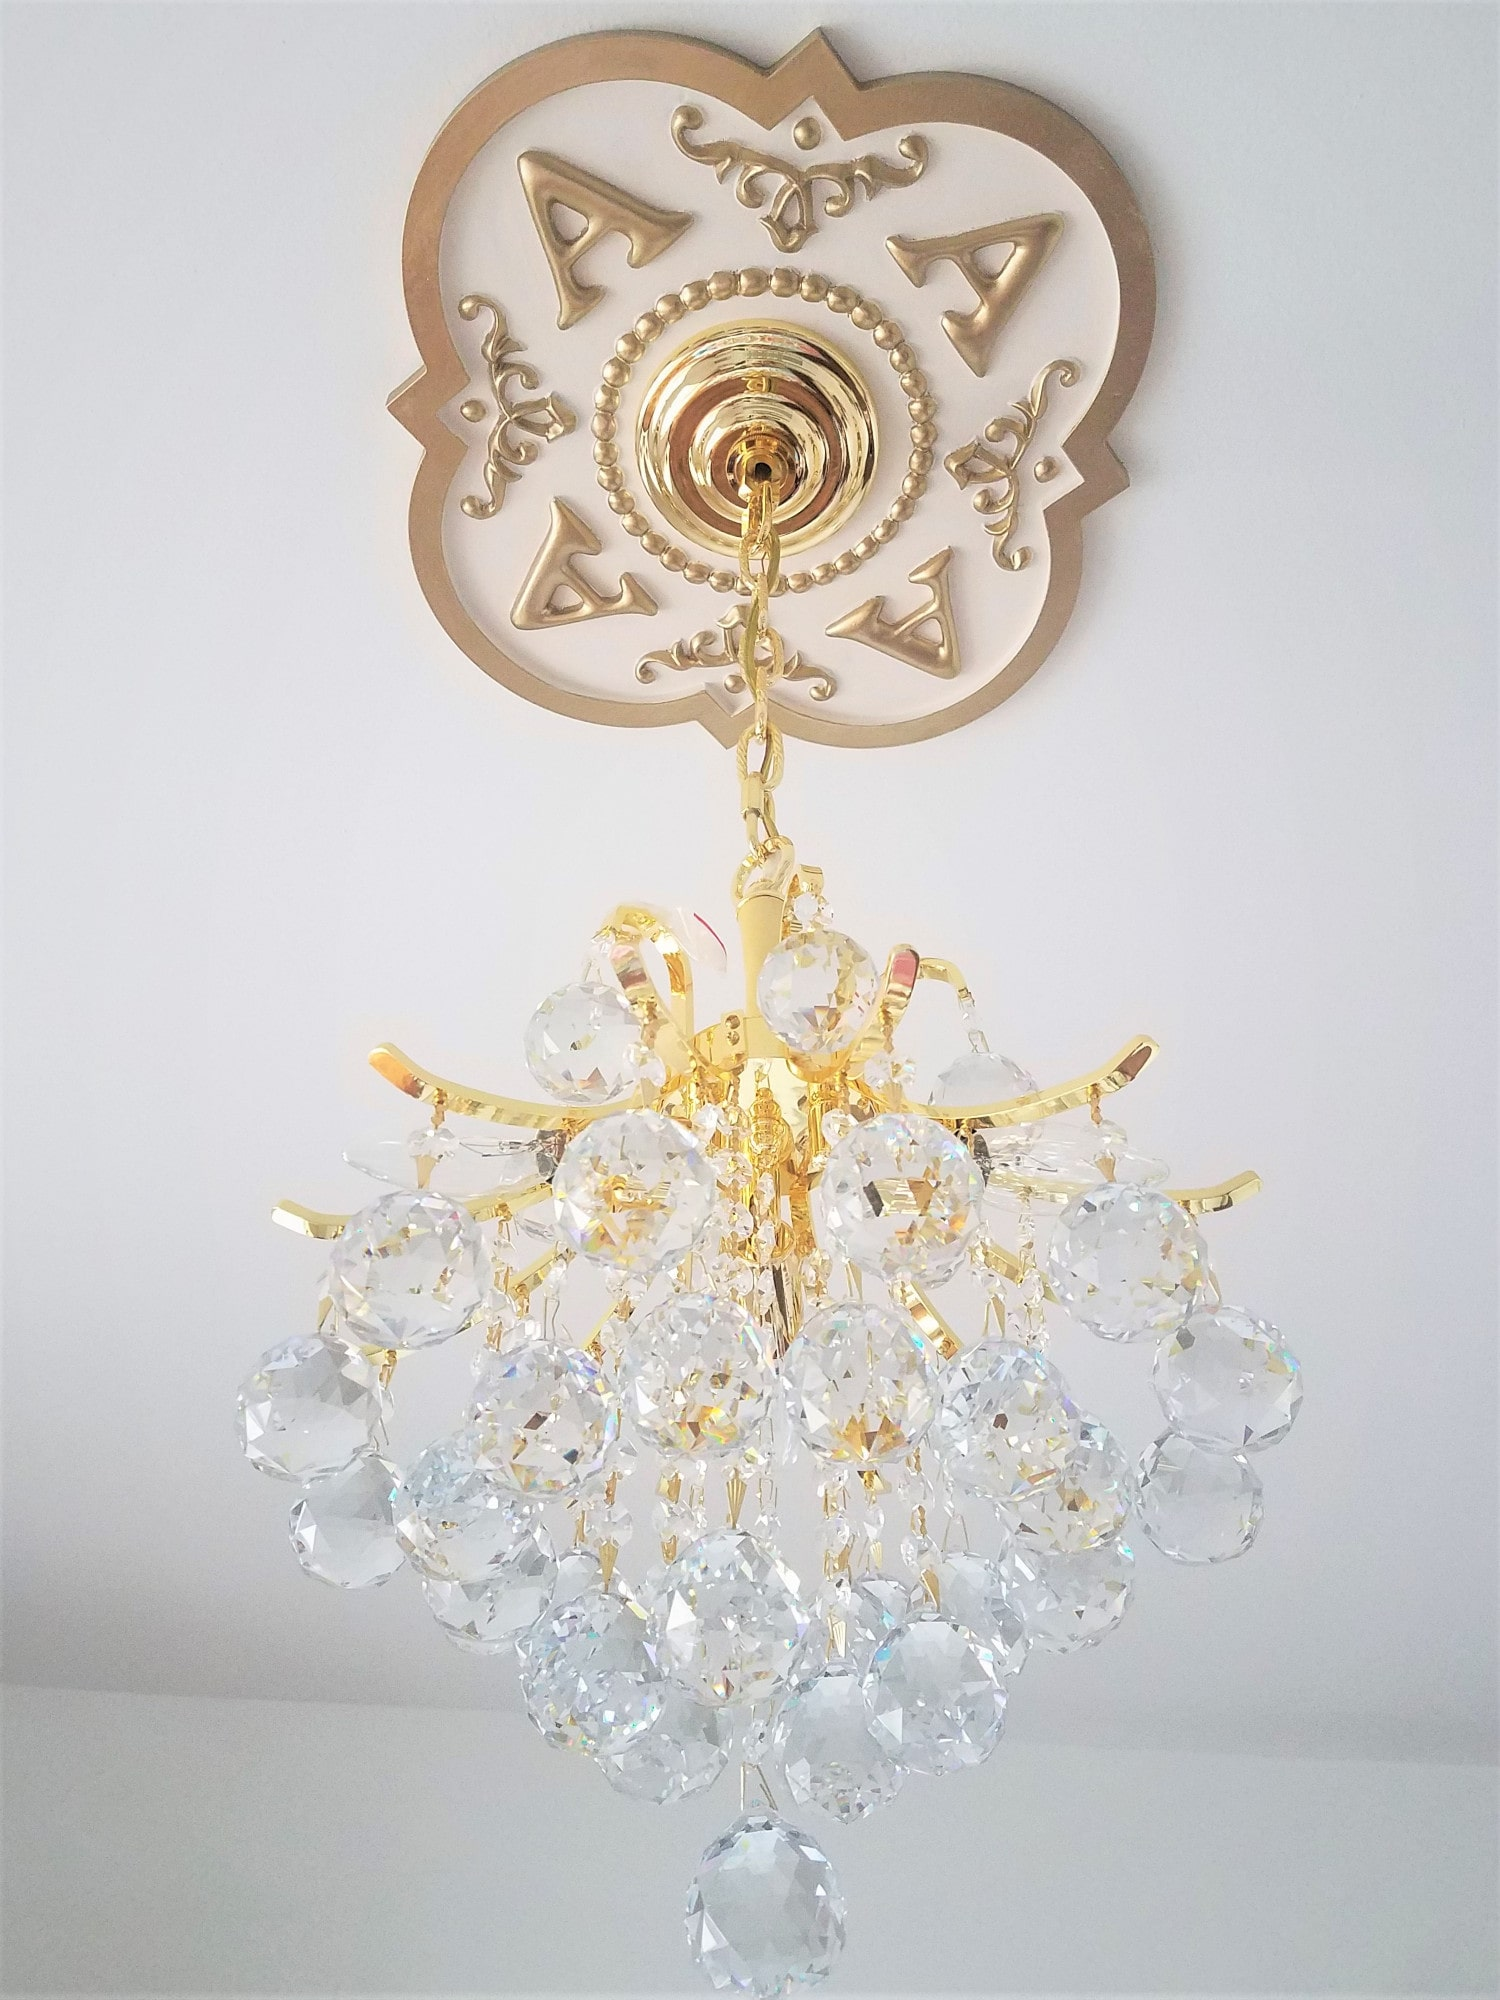 hardware vintage pin ceiling explore medallion chandelier more zk plaster and medallions acanthus lighting victorian